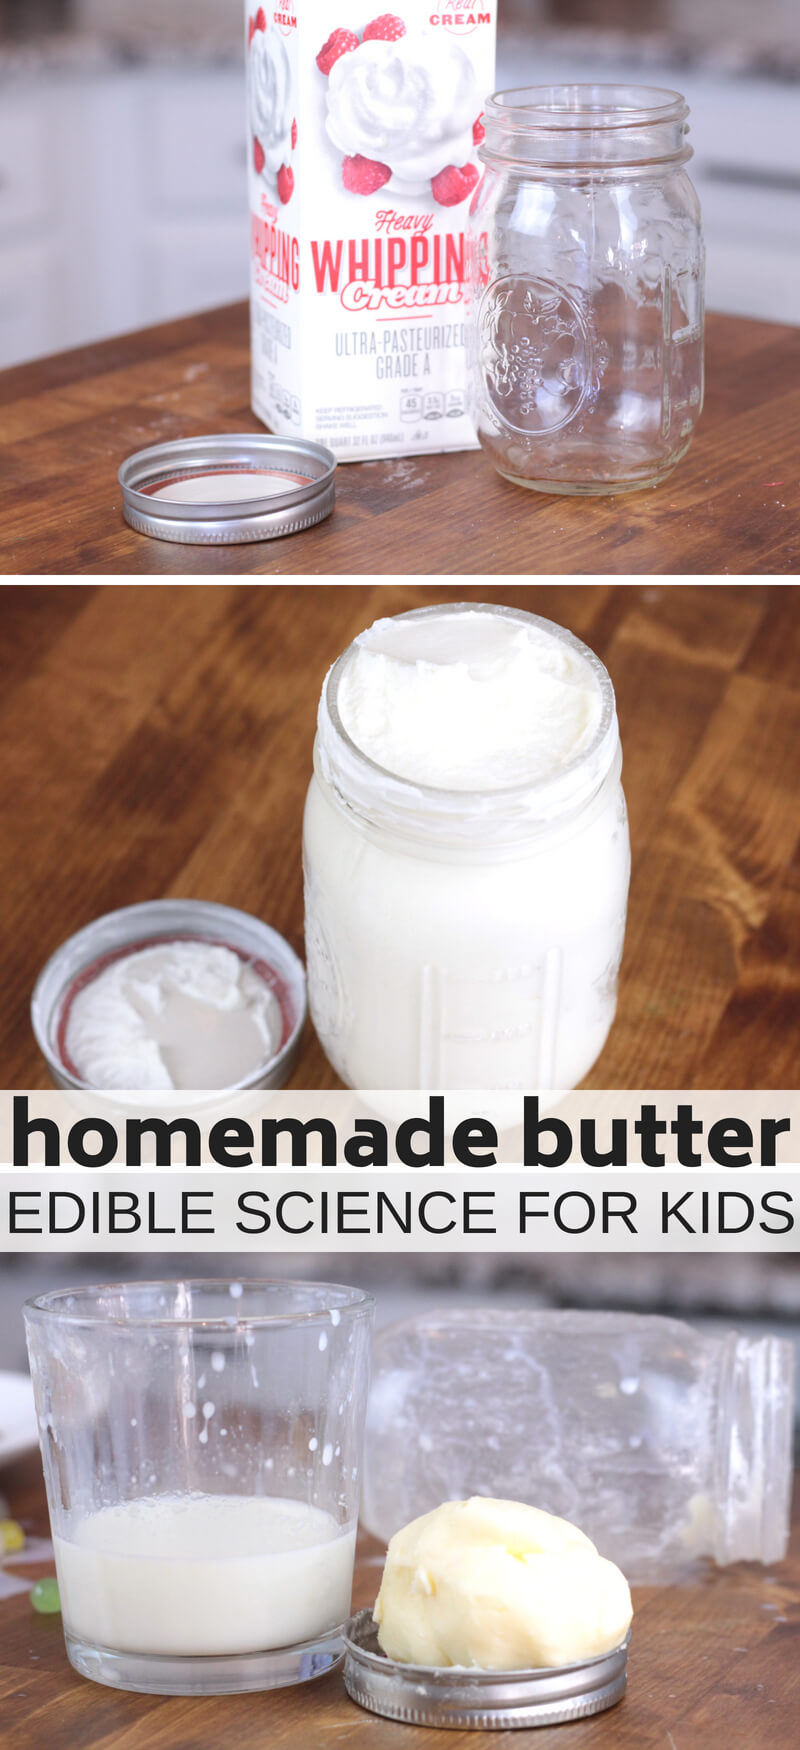 Make homemade butter for a classic science activity for kids. Homemade butter science is edible science your kids can eat!